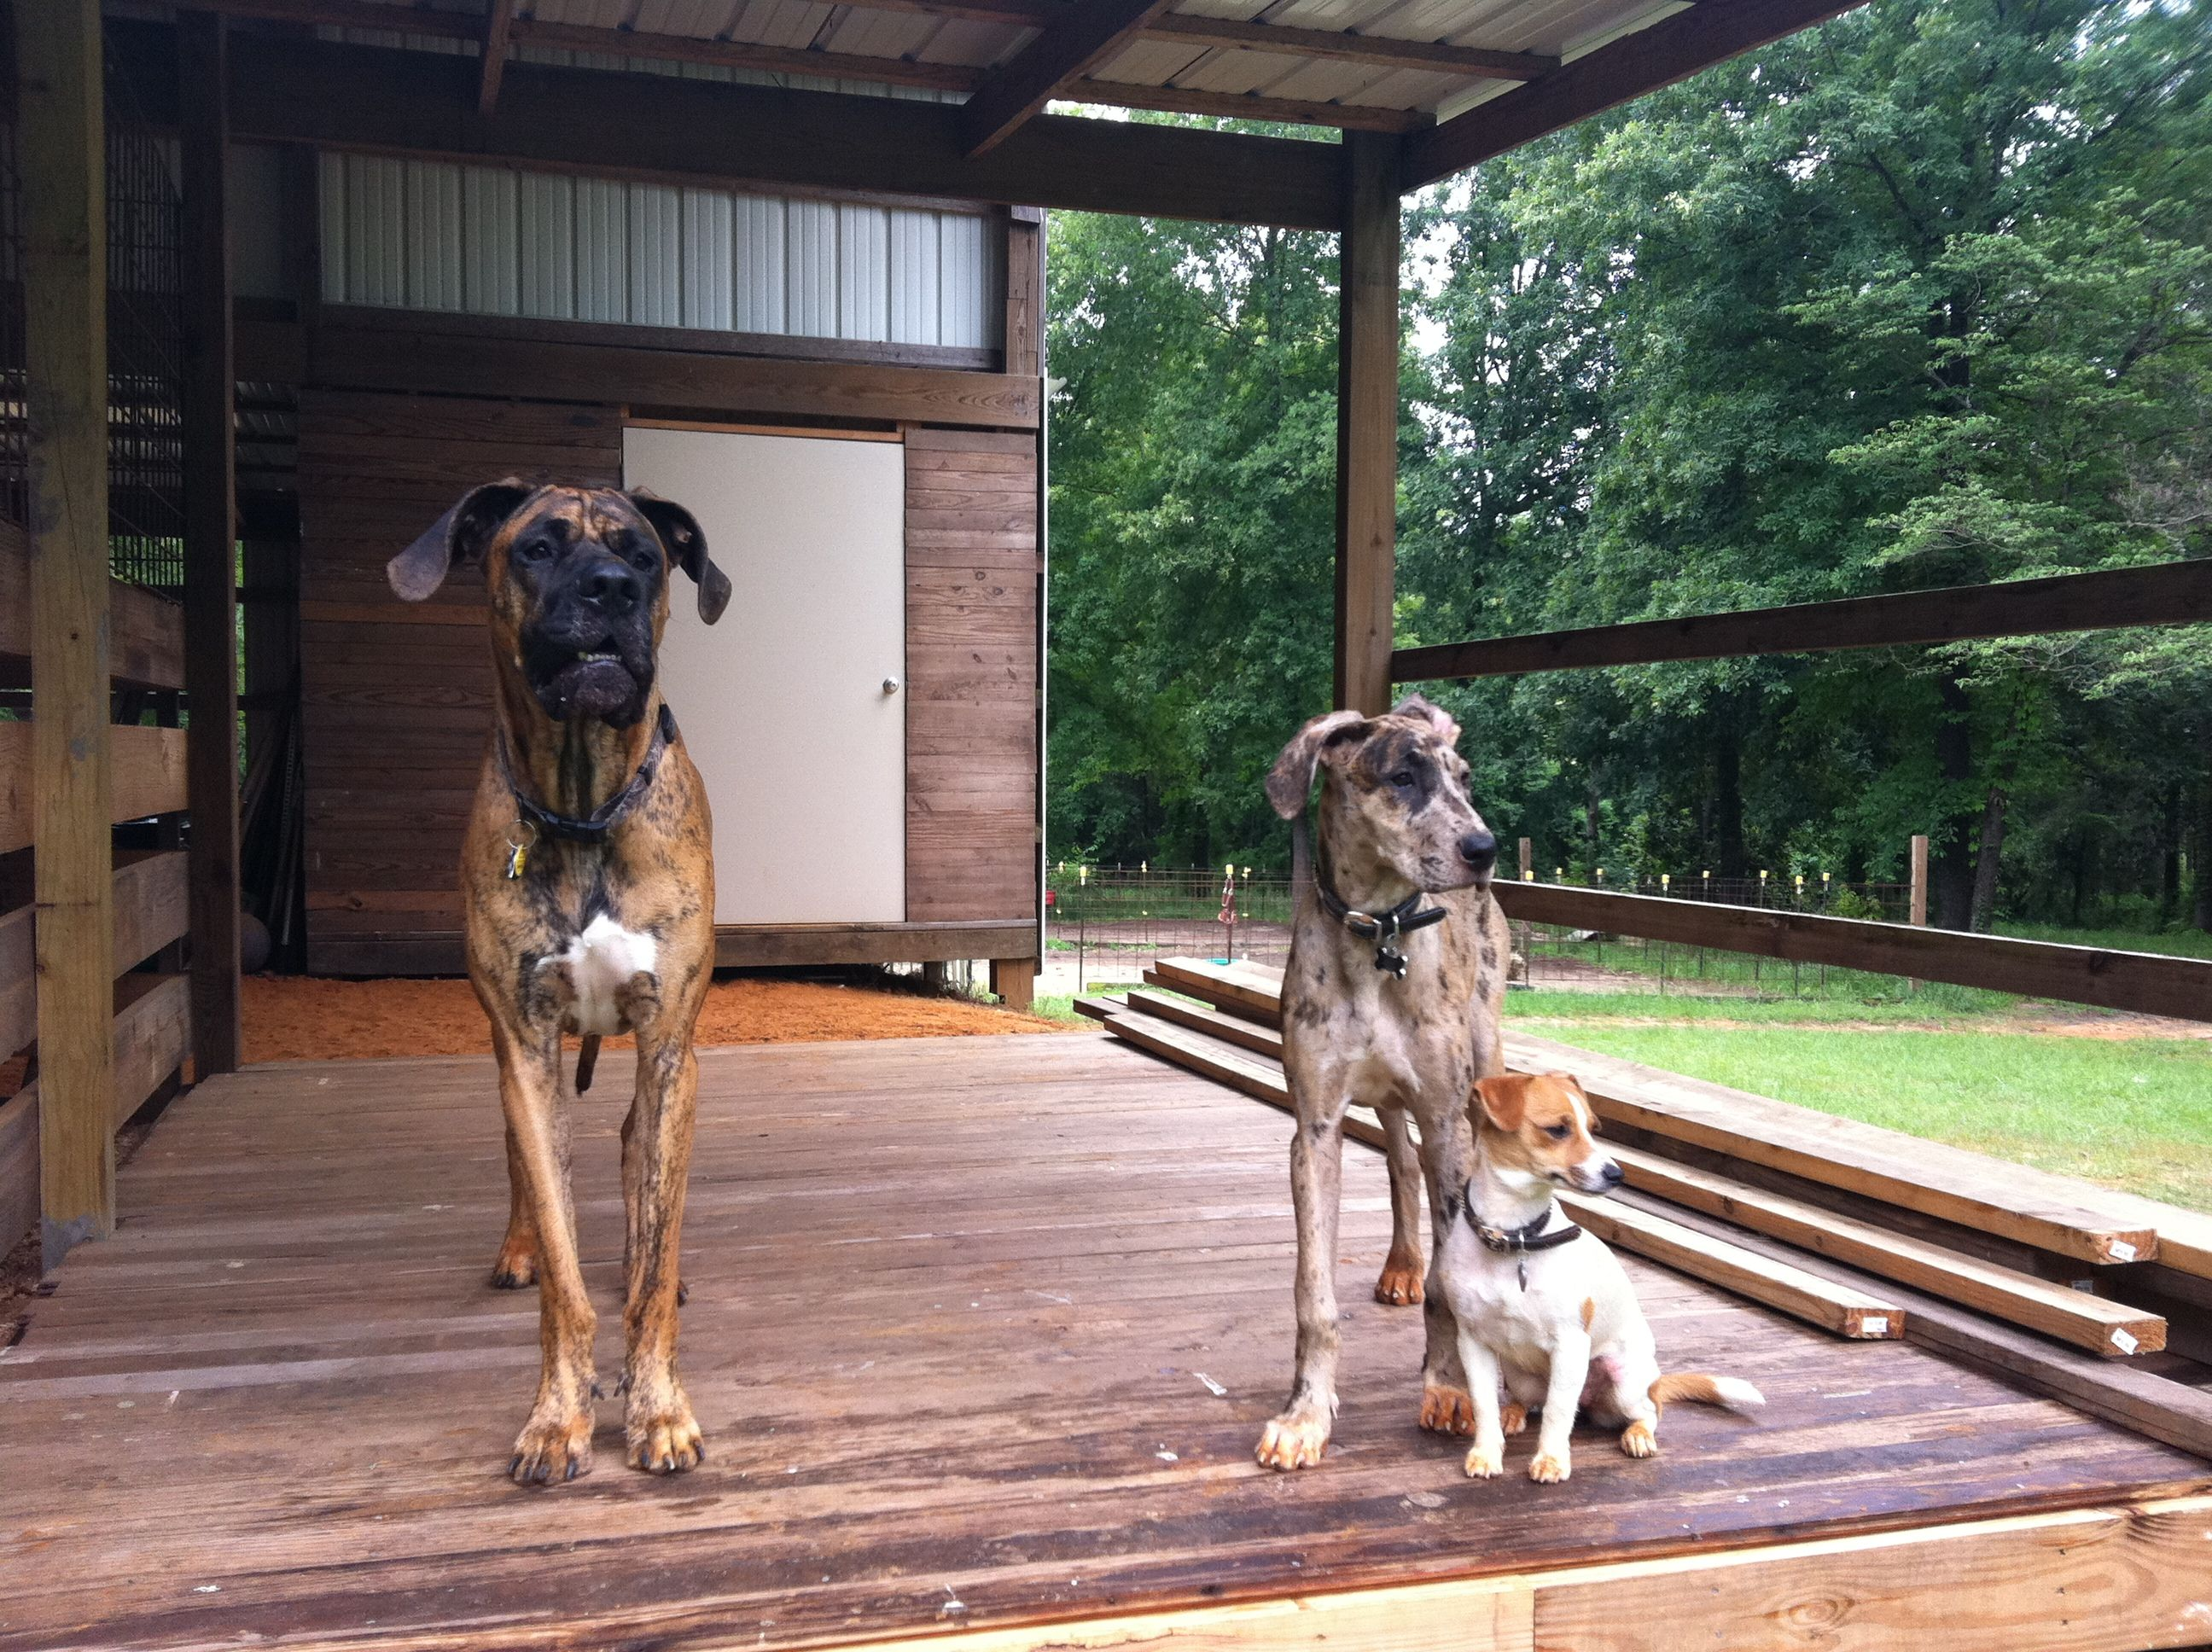 Jake,Harley, and Dixie